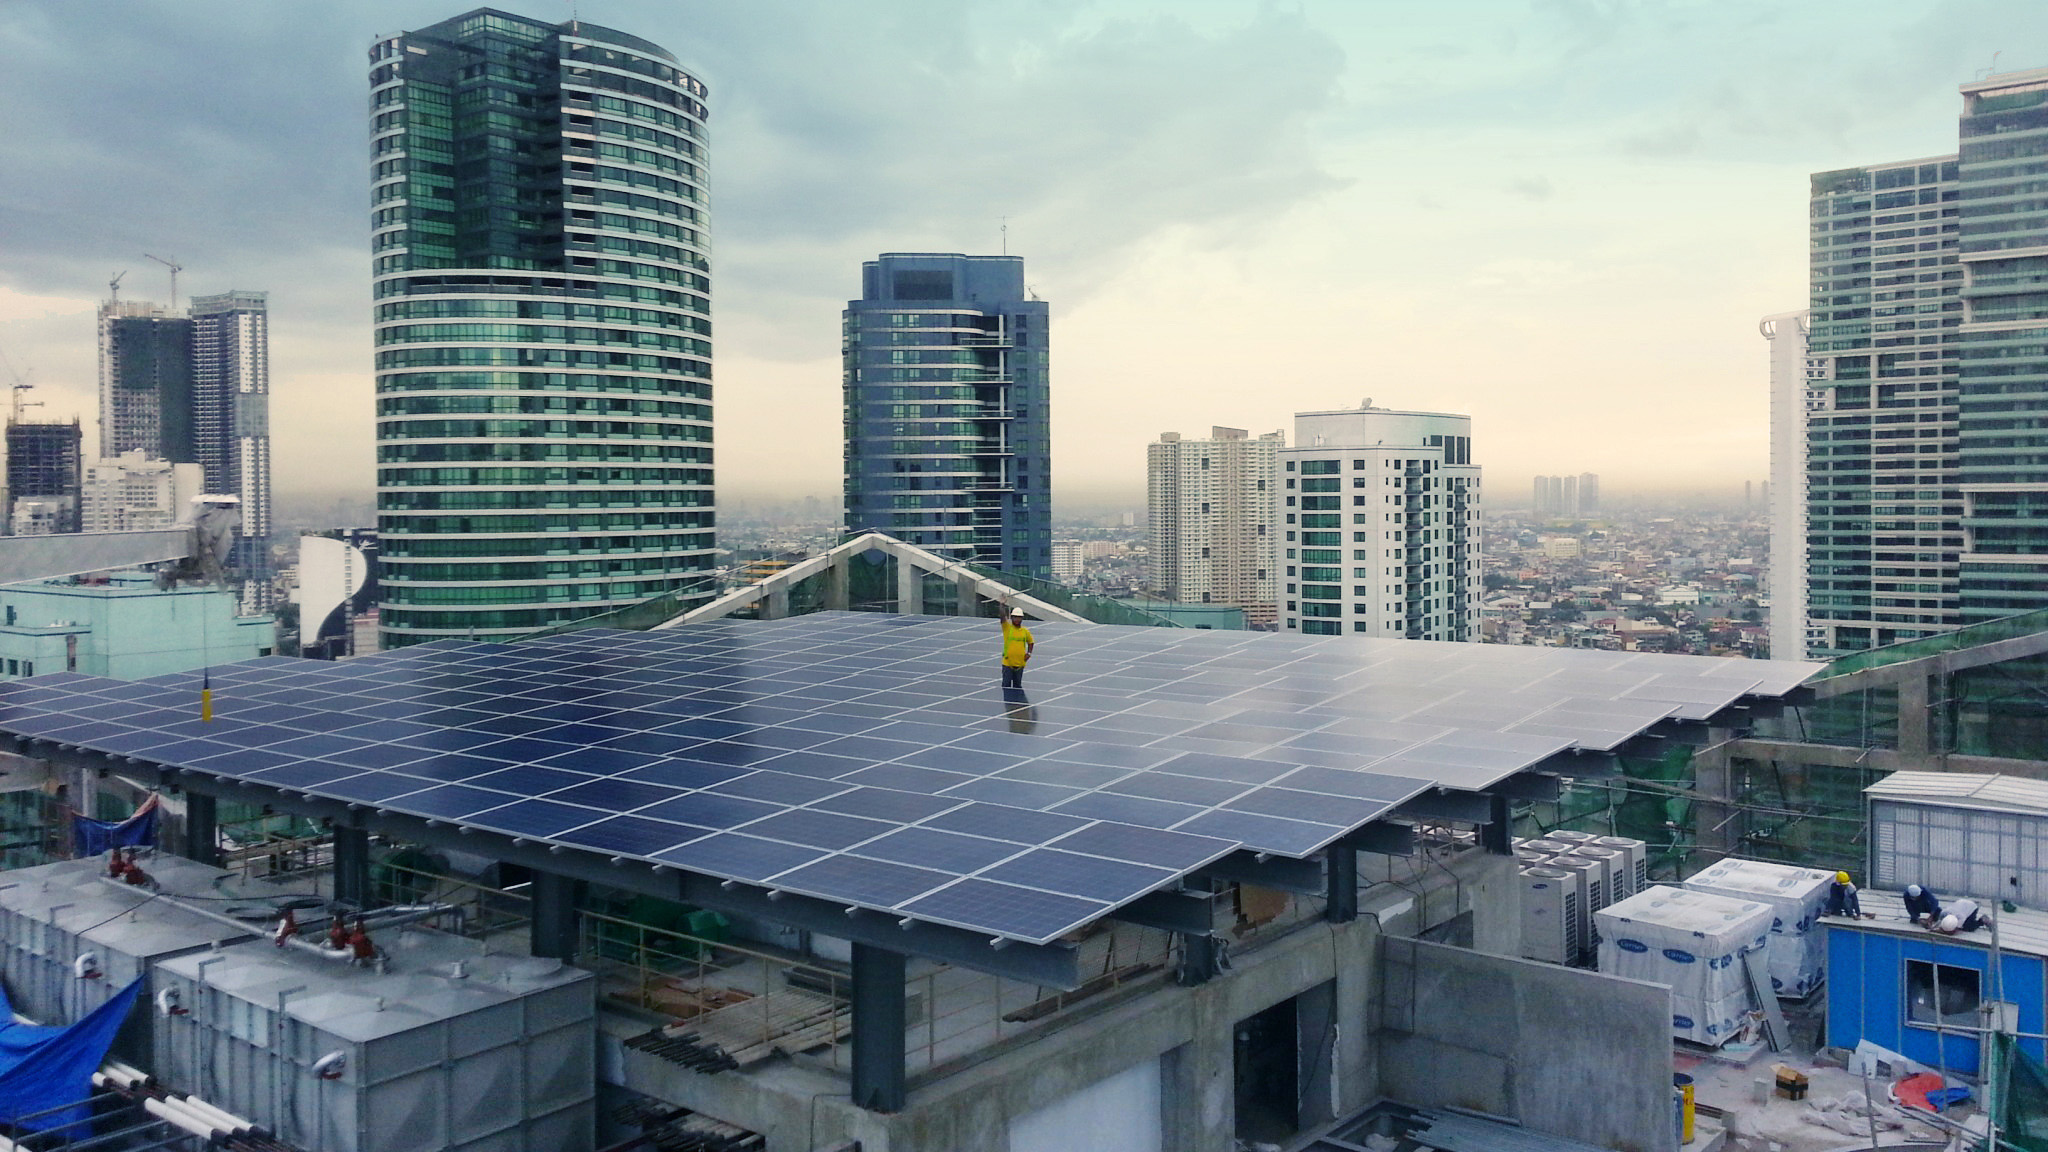 Renewable Energy Spots In The Philippines Solenergy Systems Inc Solar Diagram How Does It Work Panels And Wind